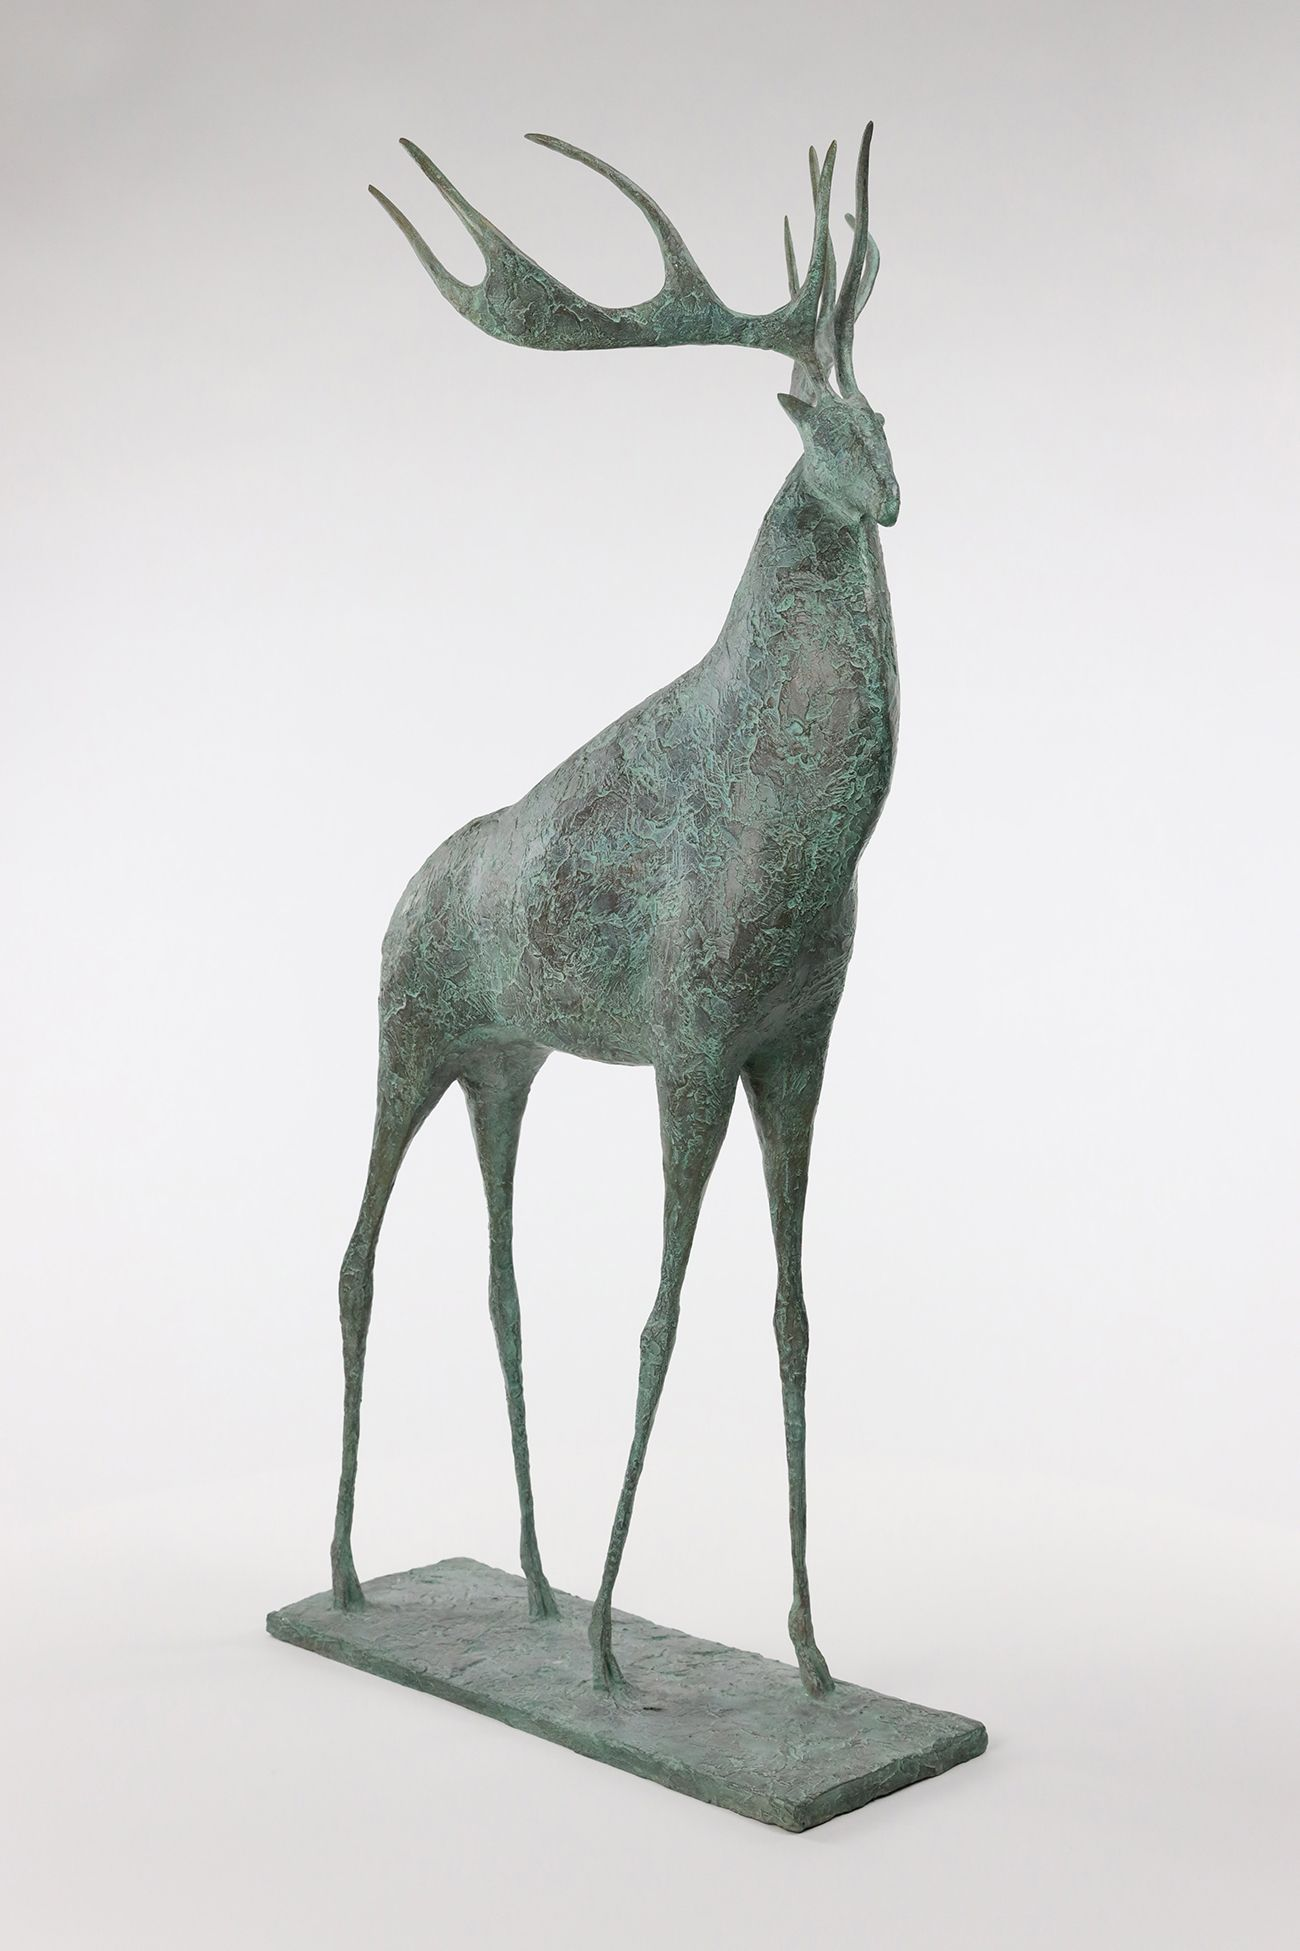 Deer II,Pierre Yermia,Sculpture, detail 1